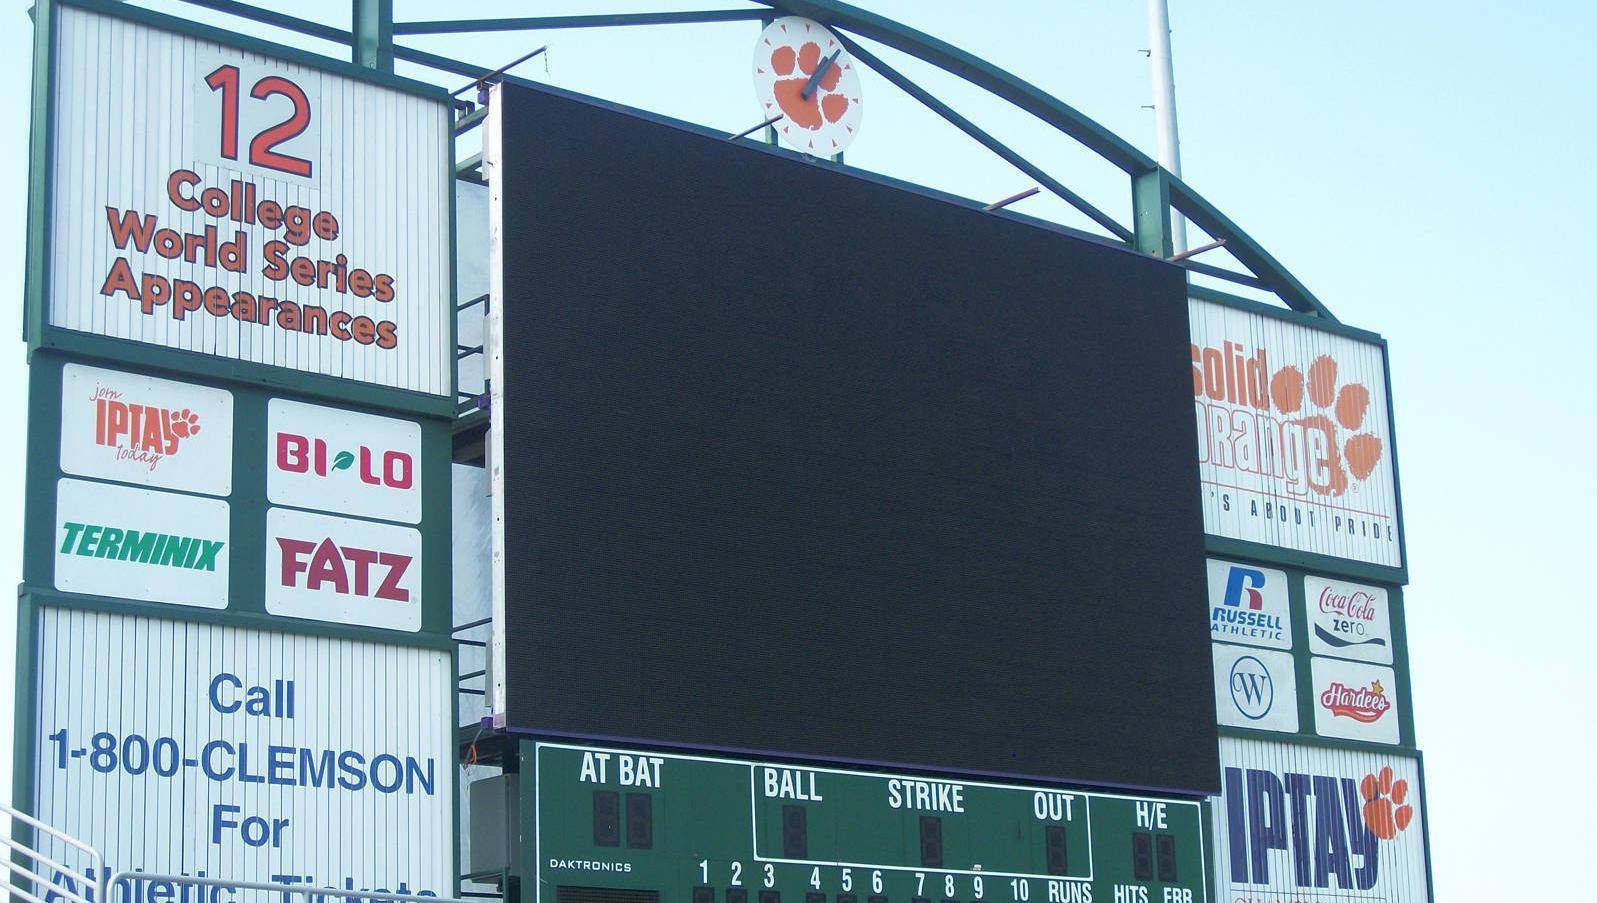 Baseball Video/Scoreboard Construction Update